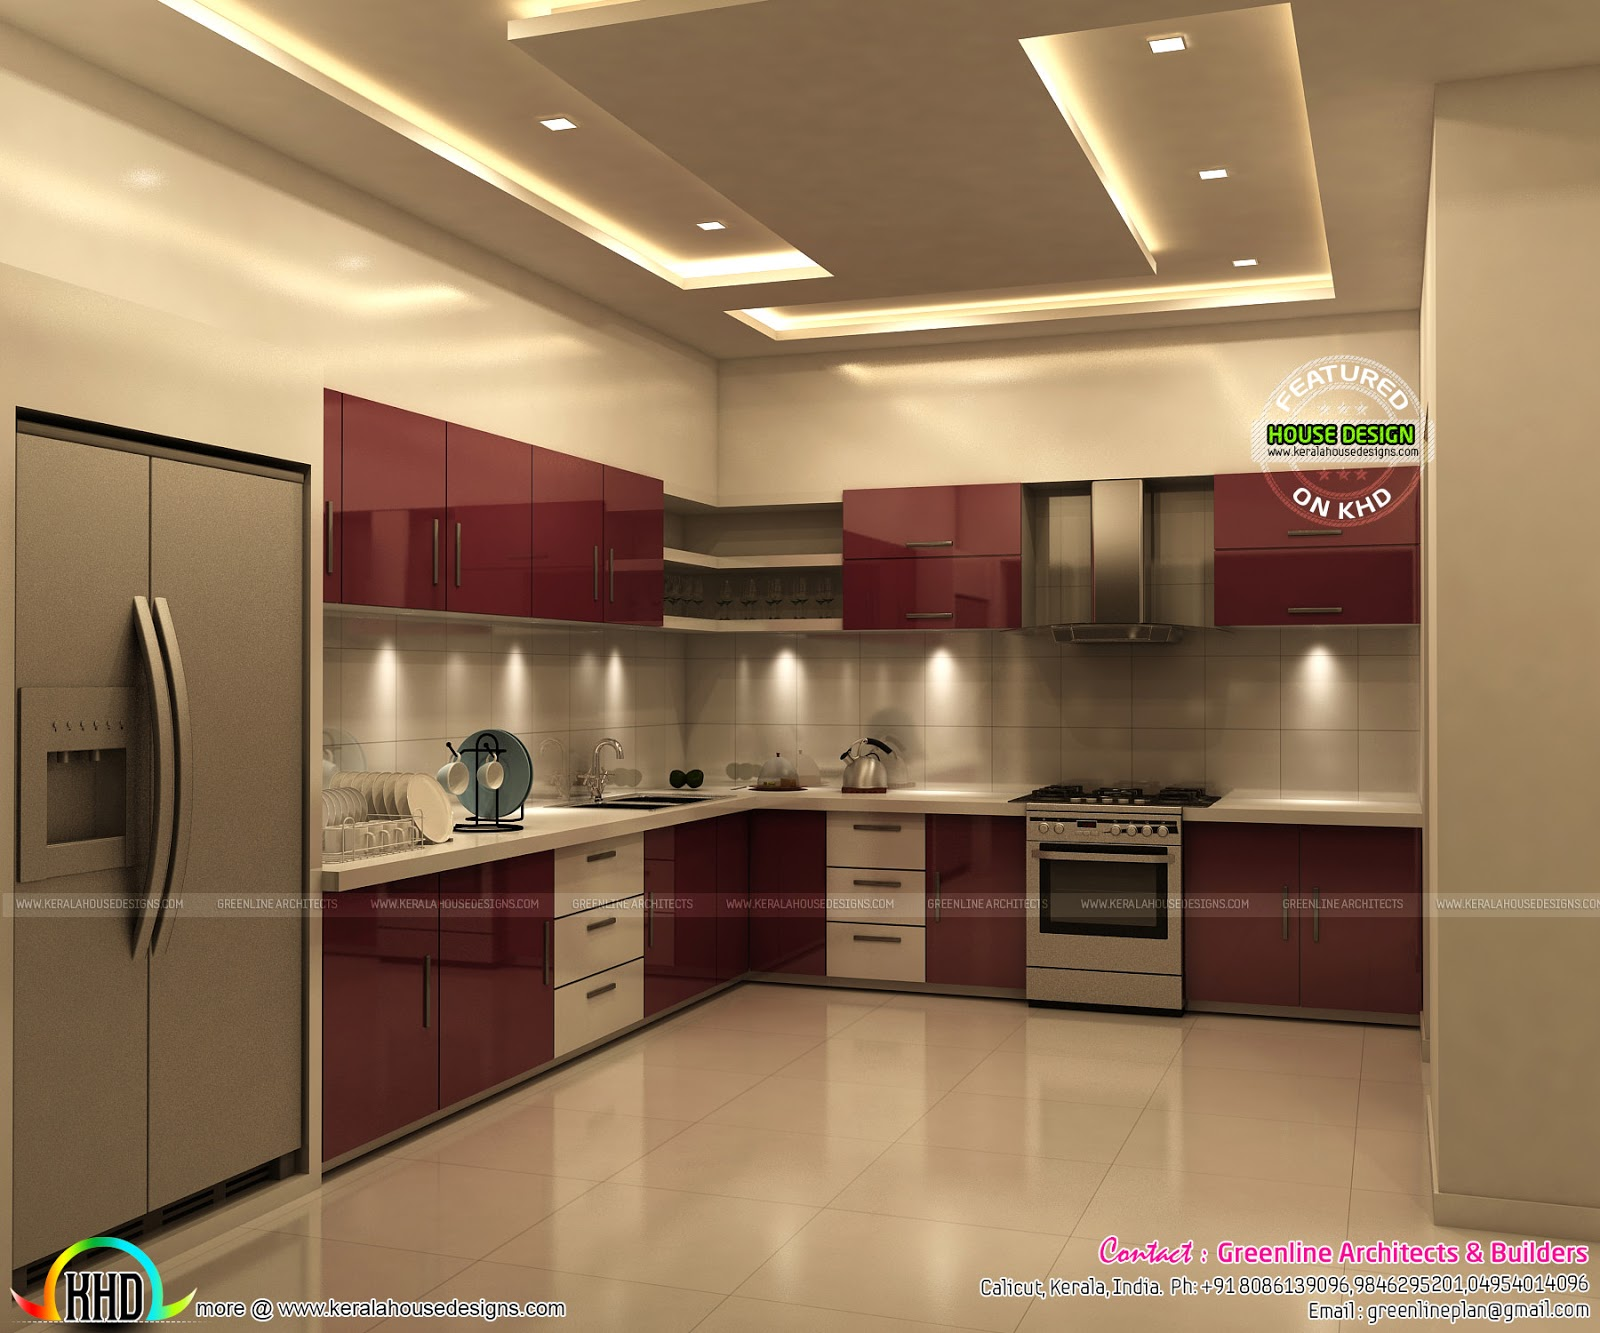 Superb kitchen and bedroom interiors kerala home design In house kitchen design